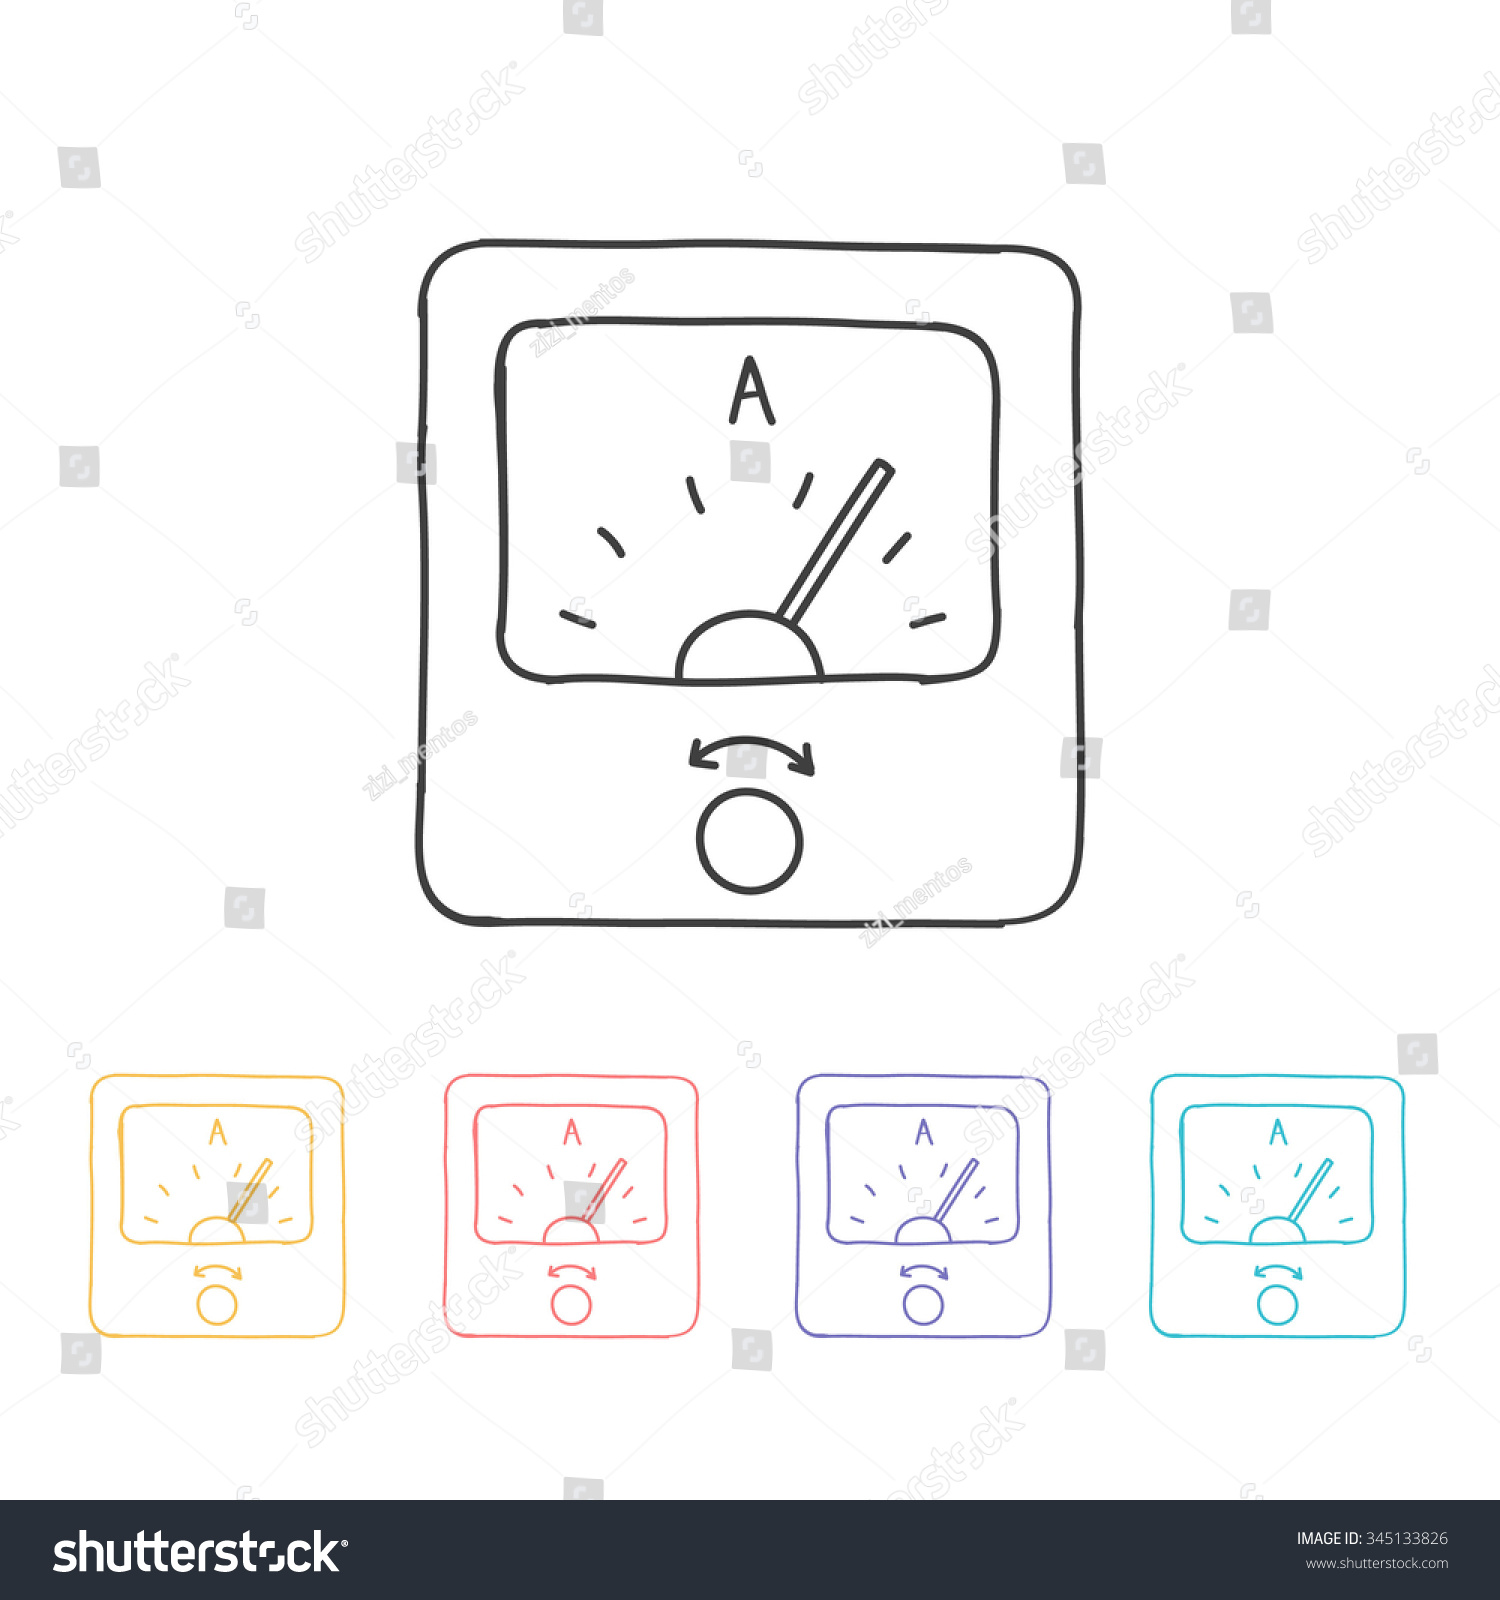 hight resolution of hand drawn icon ammeter vector illustration